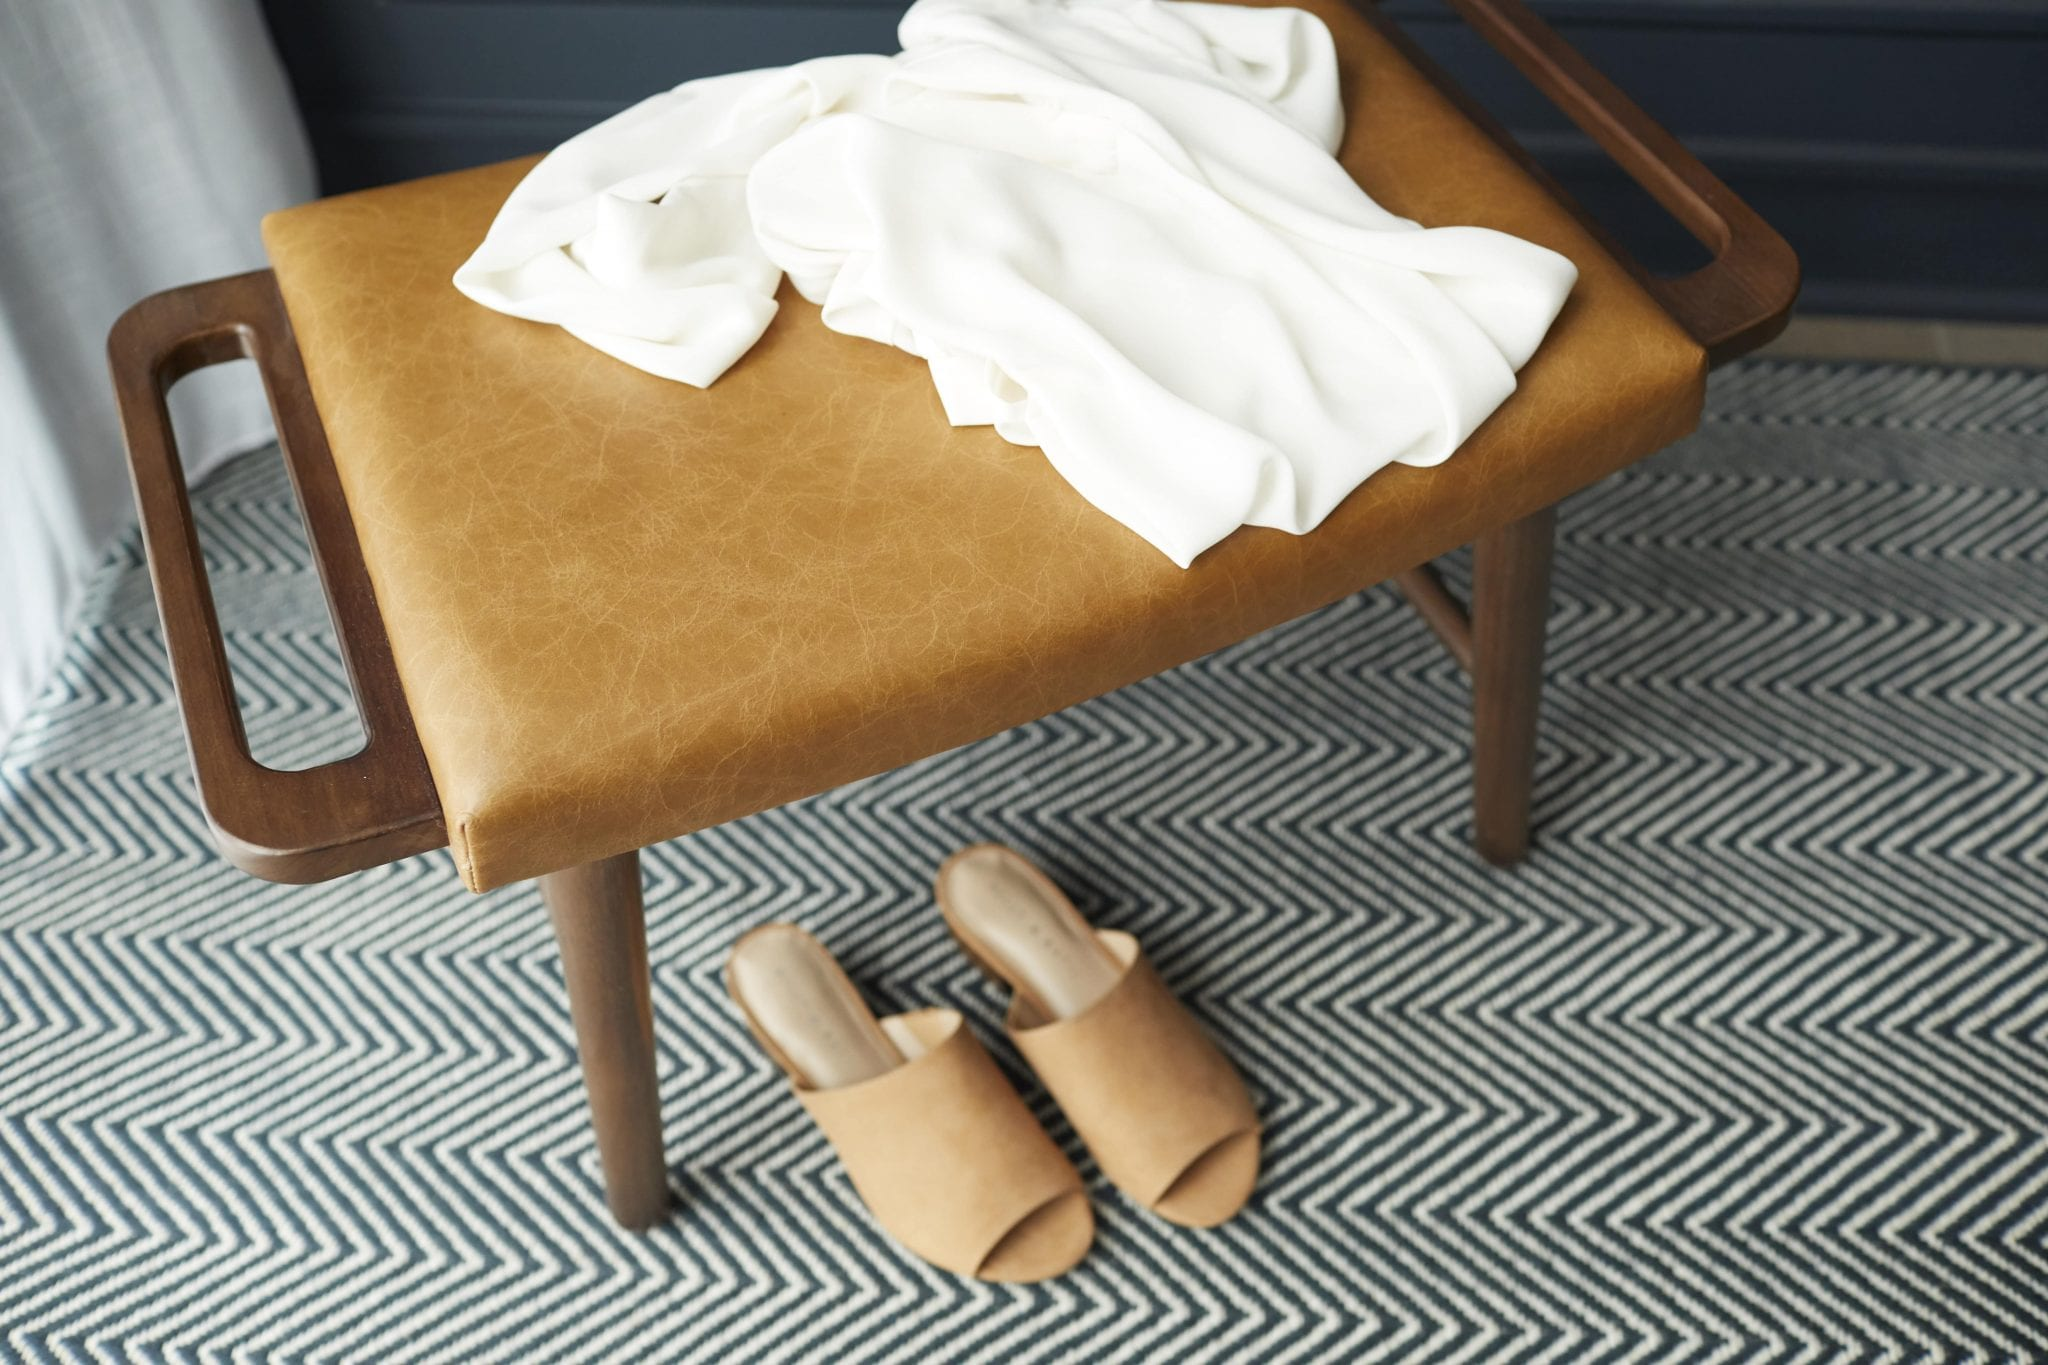 Room Detail, Shoes and Shirt on Ottoman